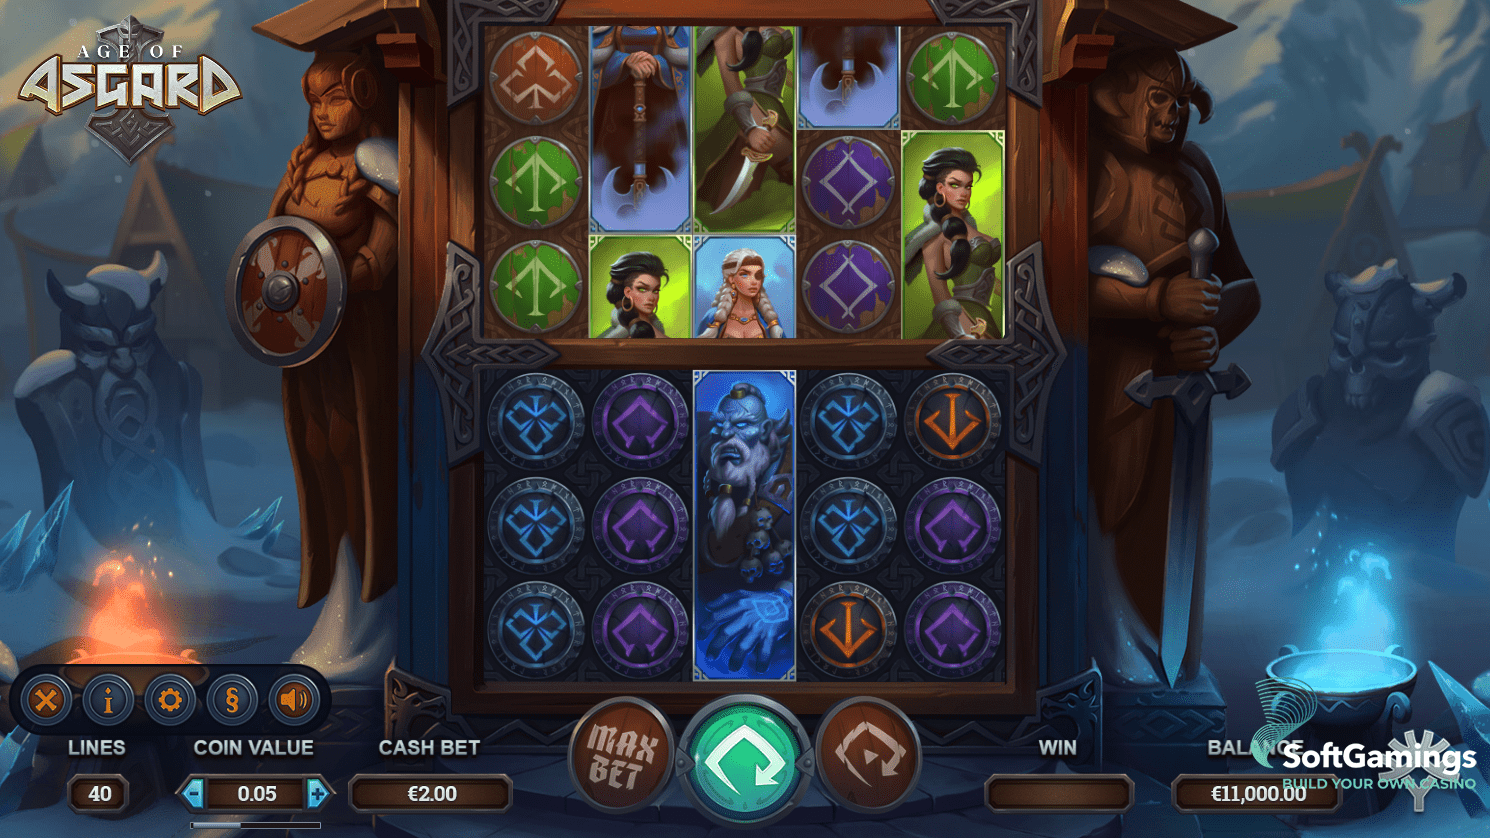 Age of Asgard Slot Game Symbols and Winning Combinations